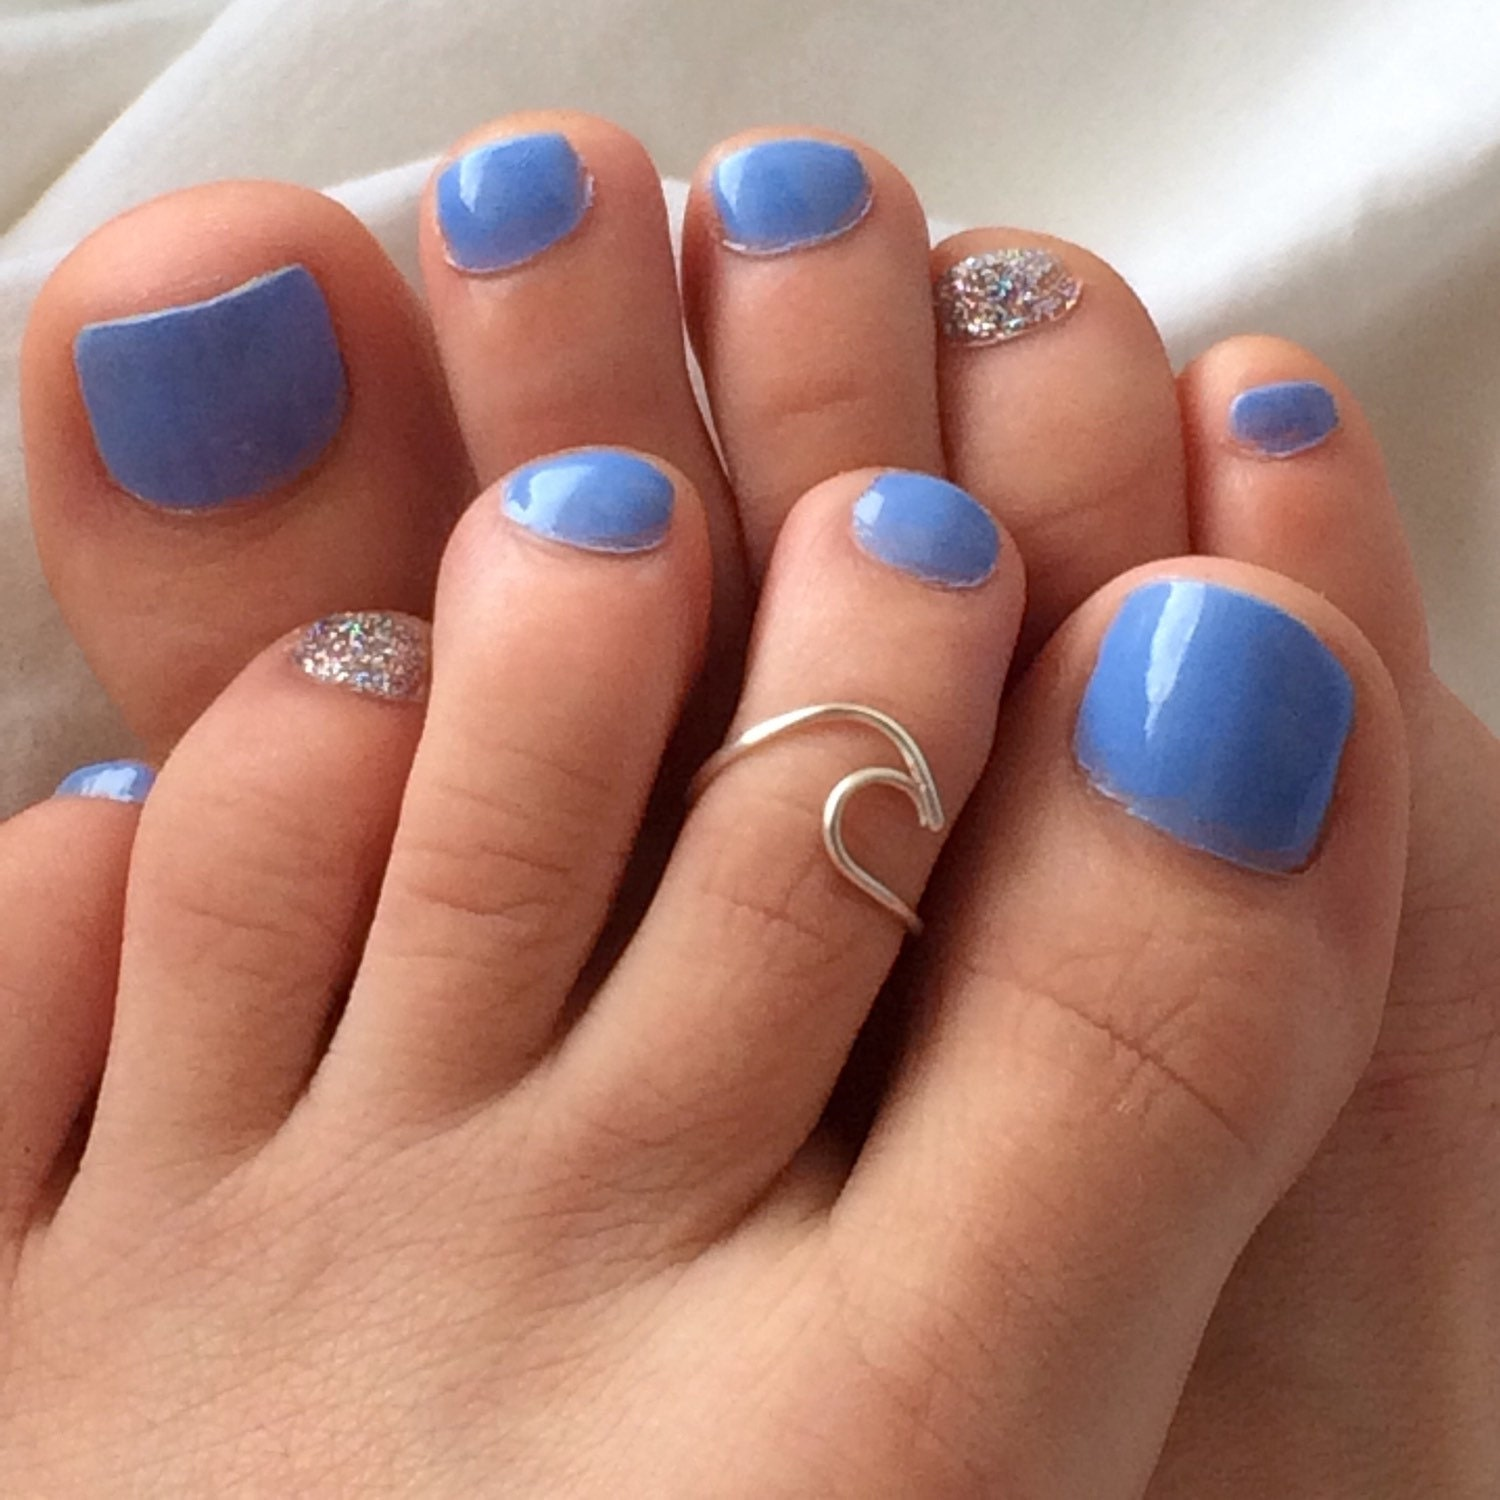 toe ring on a teen